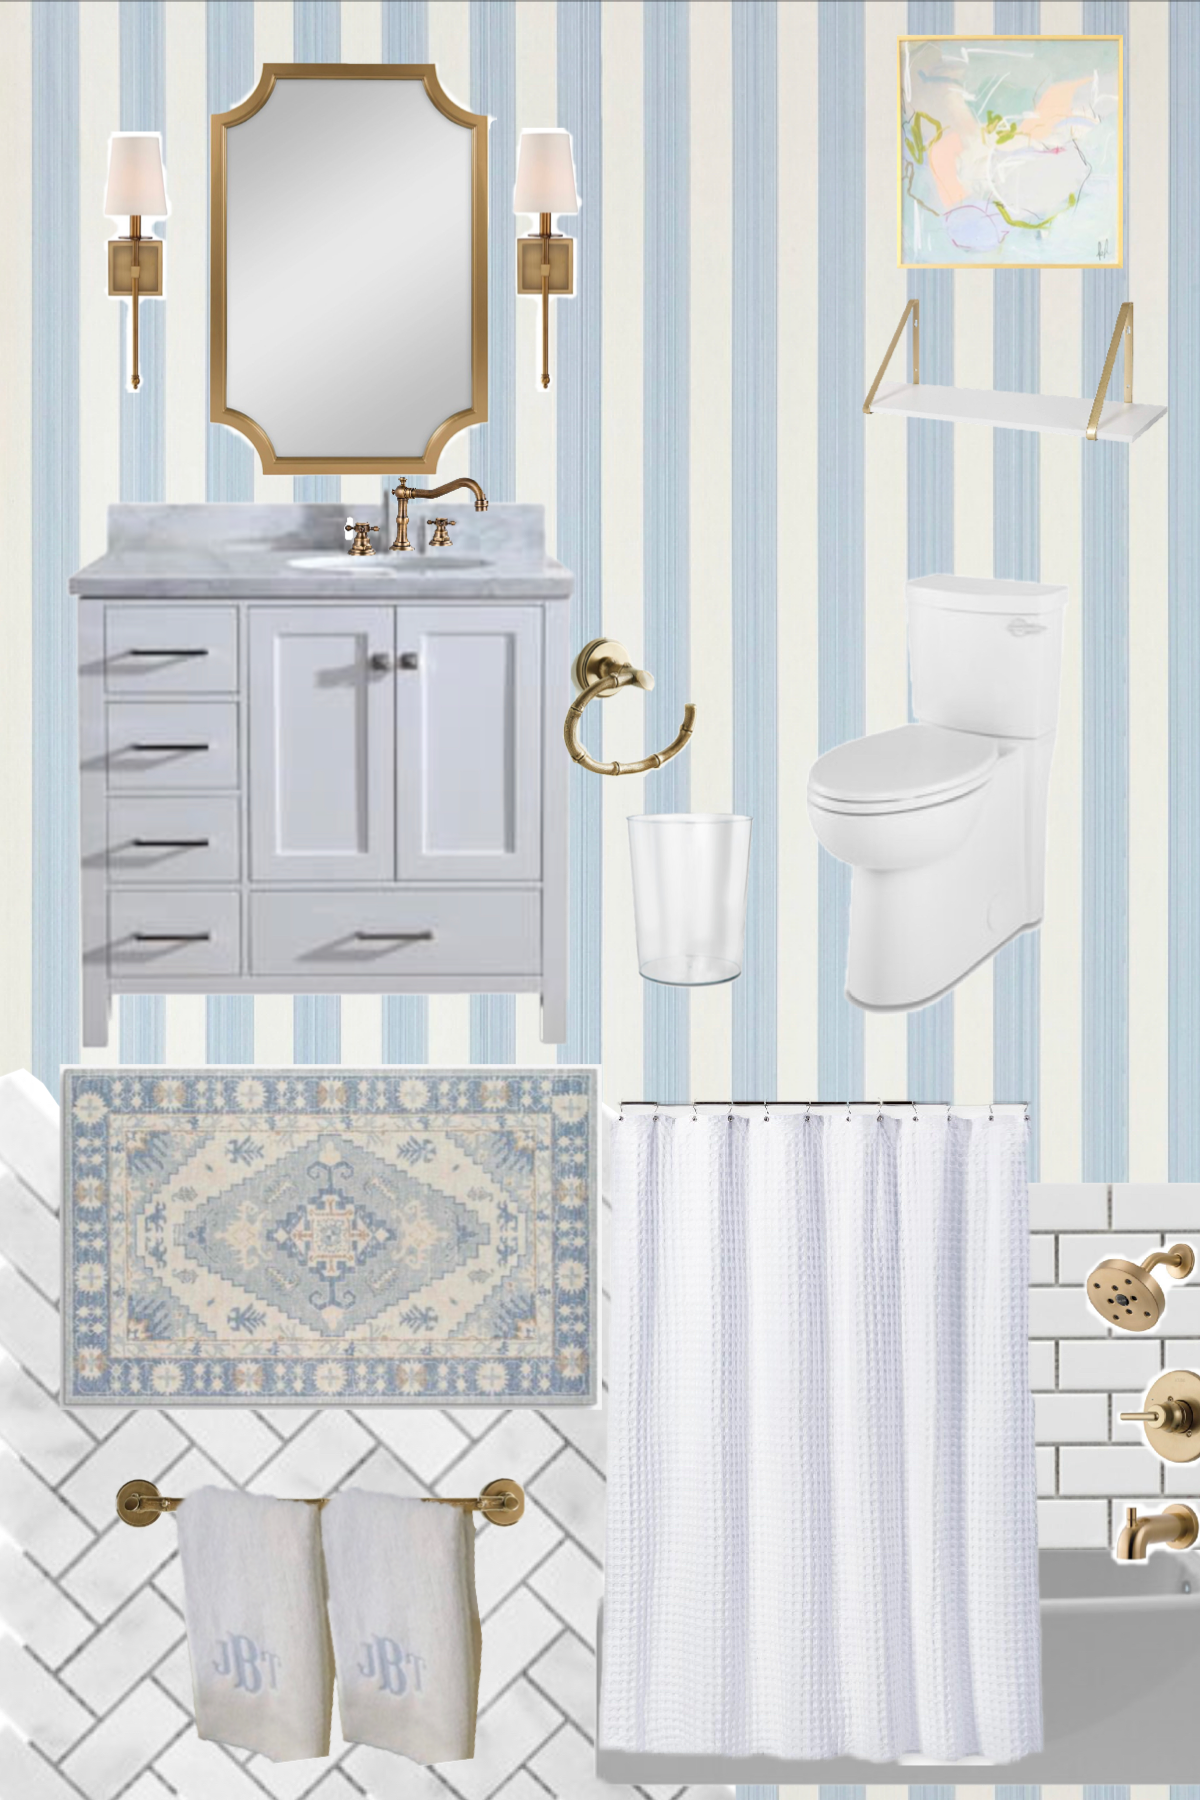 Our Small Bathroom Reno Design Board